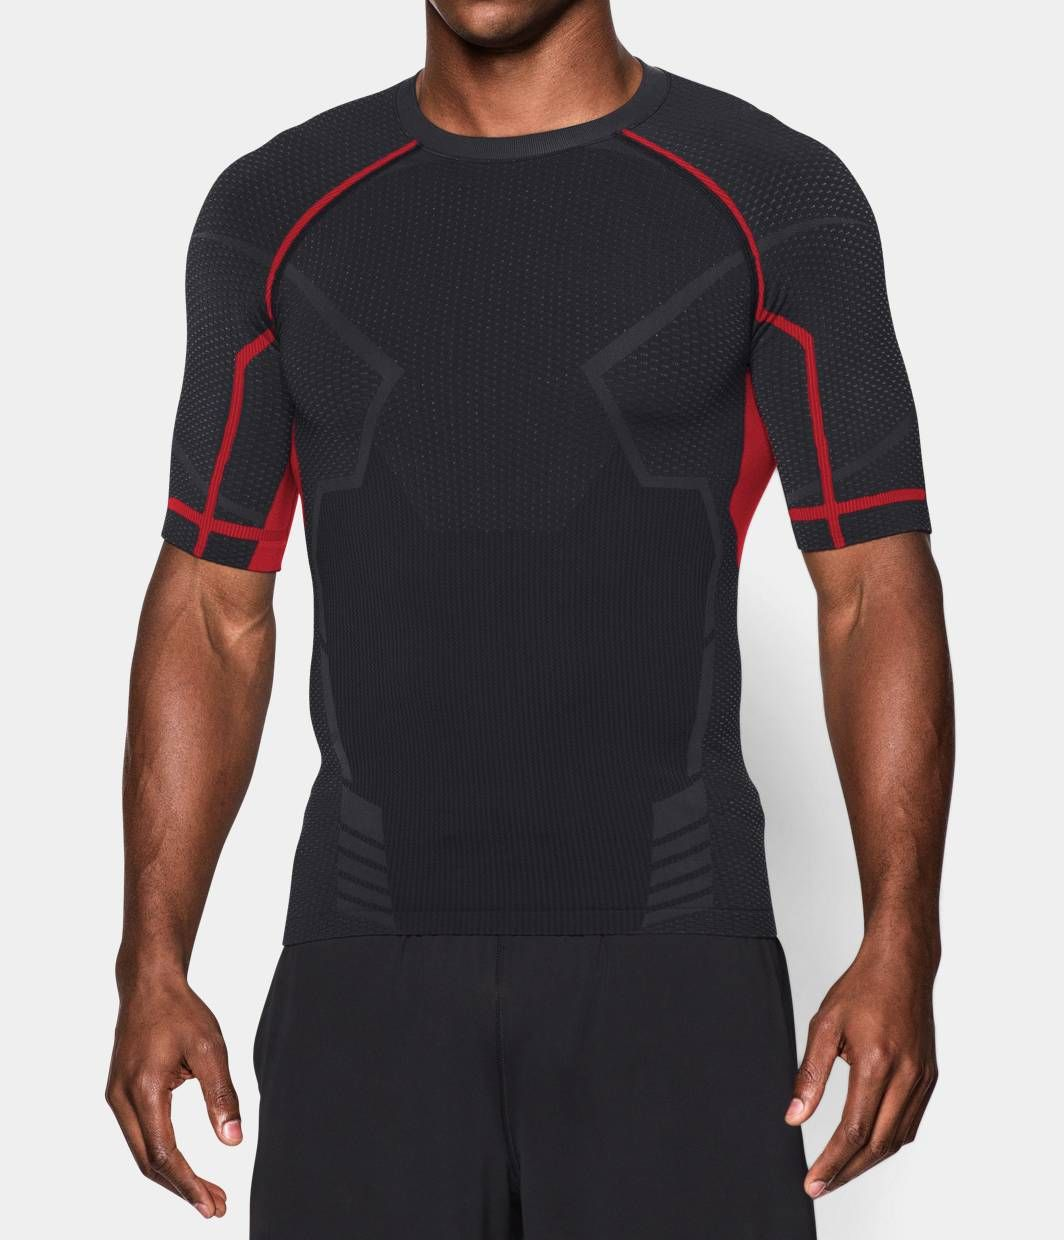 462f25a758ea Men s Iron Man UA Seamless Compression Shirt